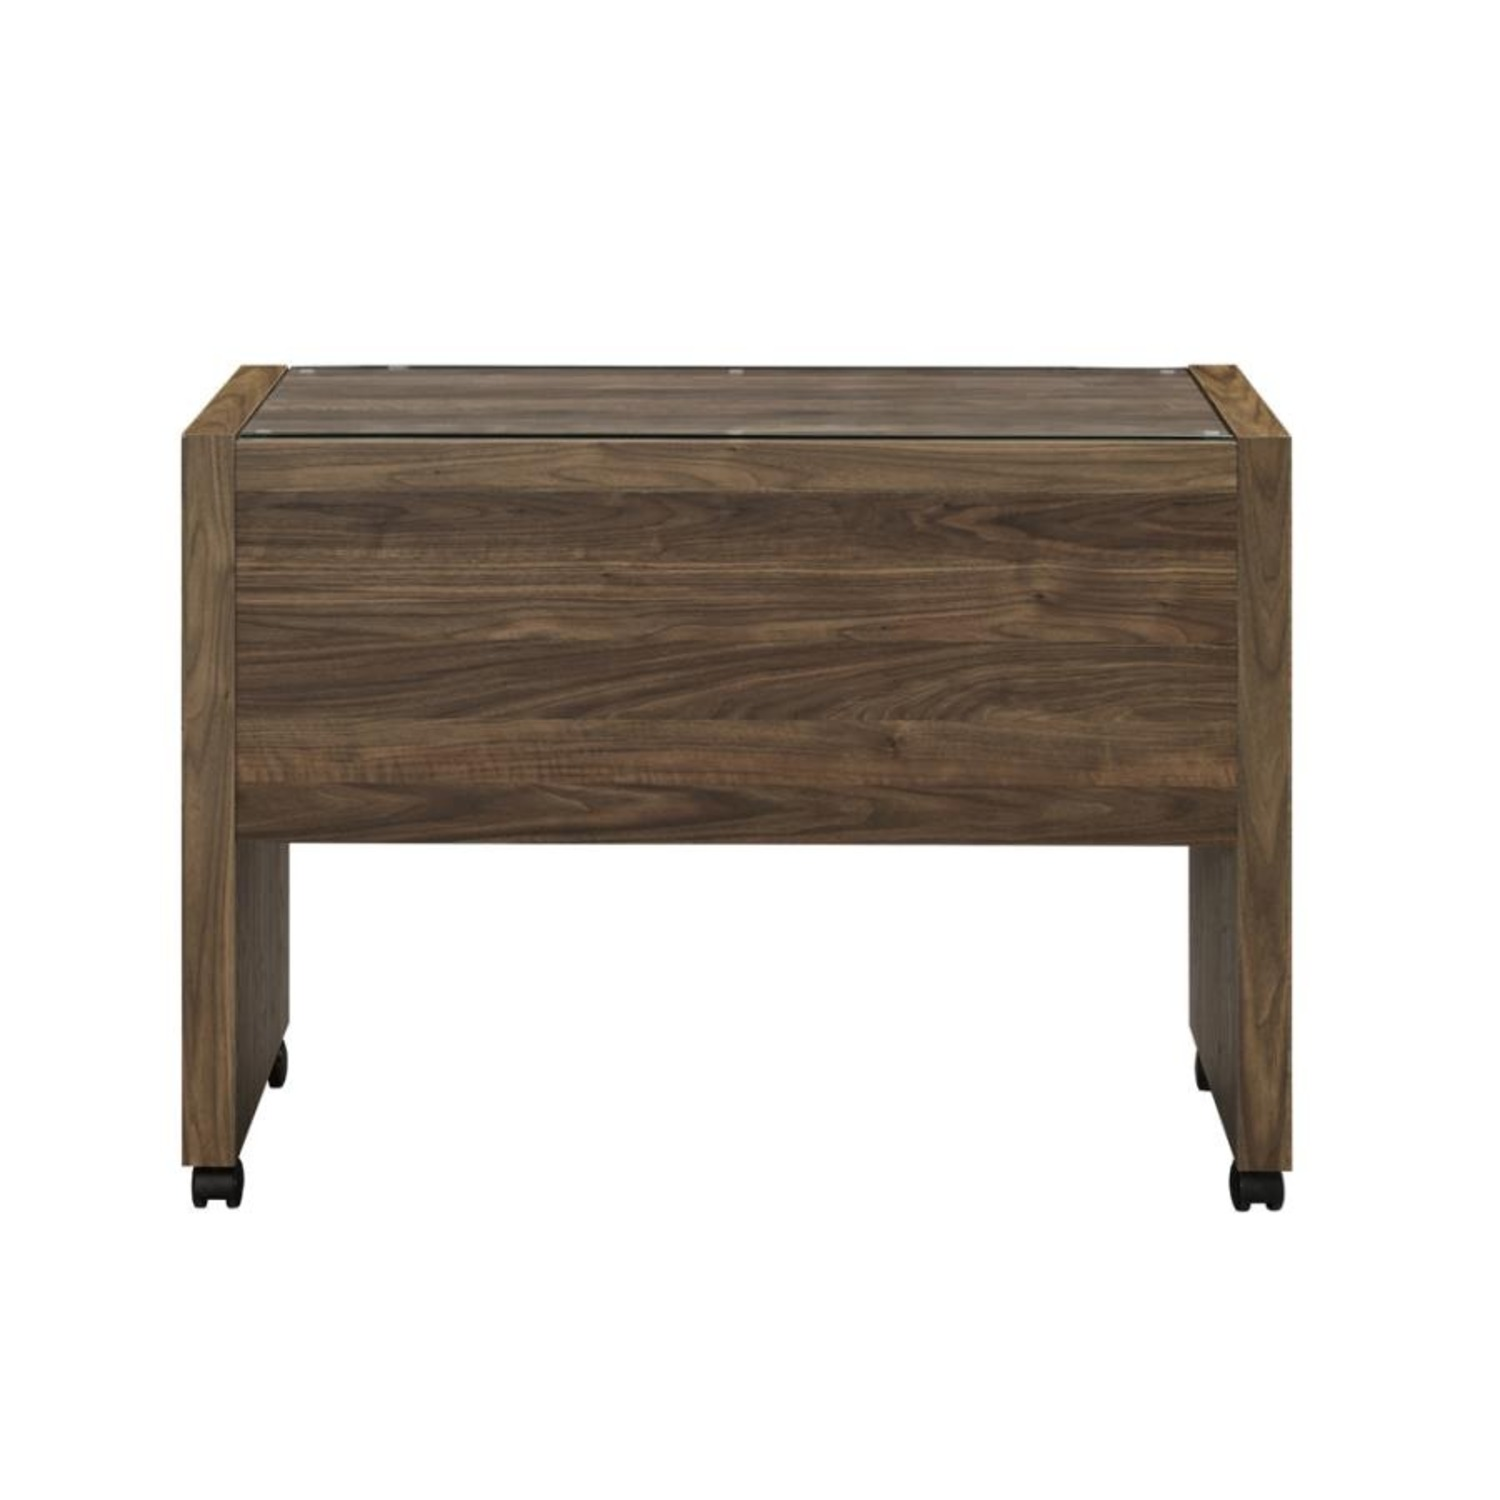 Mobile Return On Casters In Aged Walnut Finish  - image-2